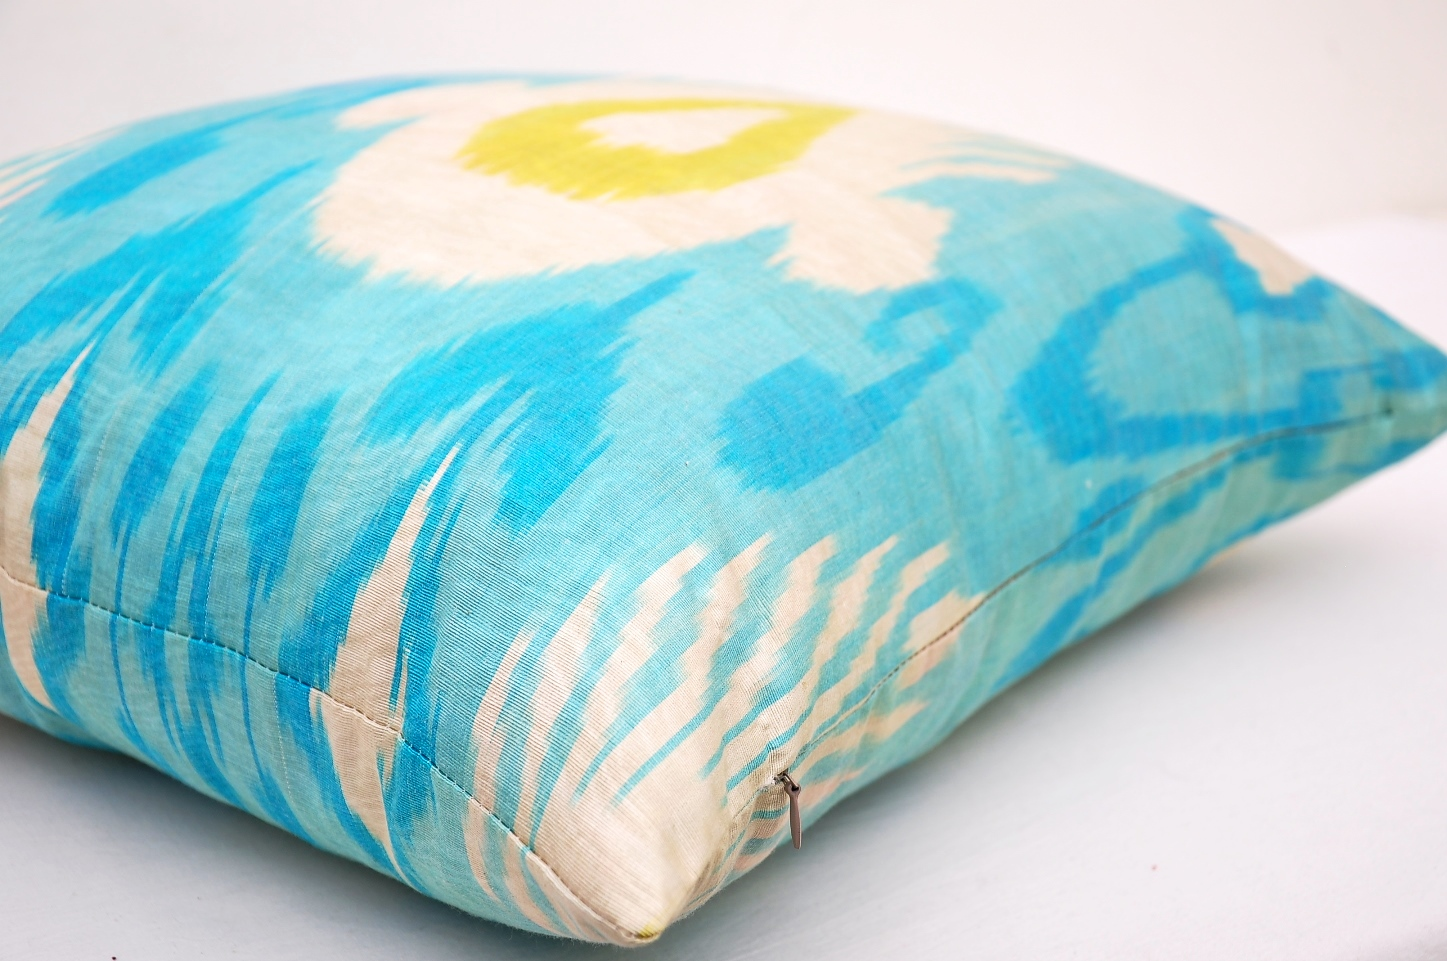 Light Blue Silk Throw Pillow : Light Blue Silk Ikat Throw Pillow - Alesouk Grand Bazaar online shopping